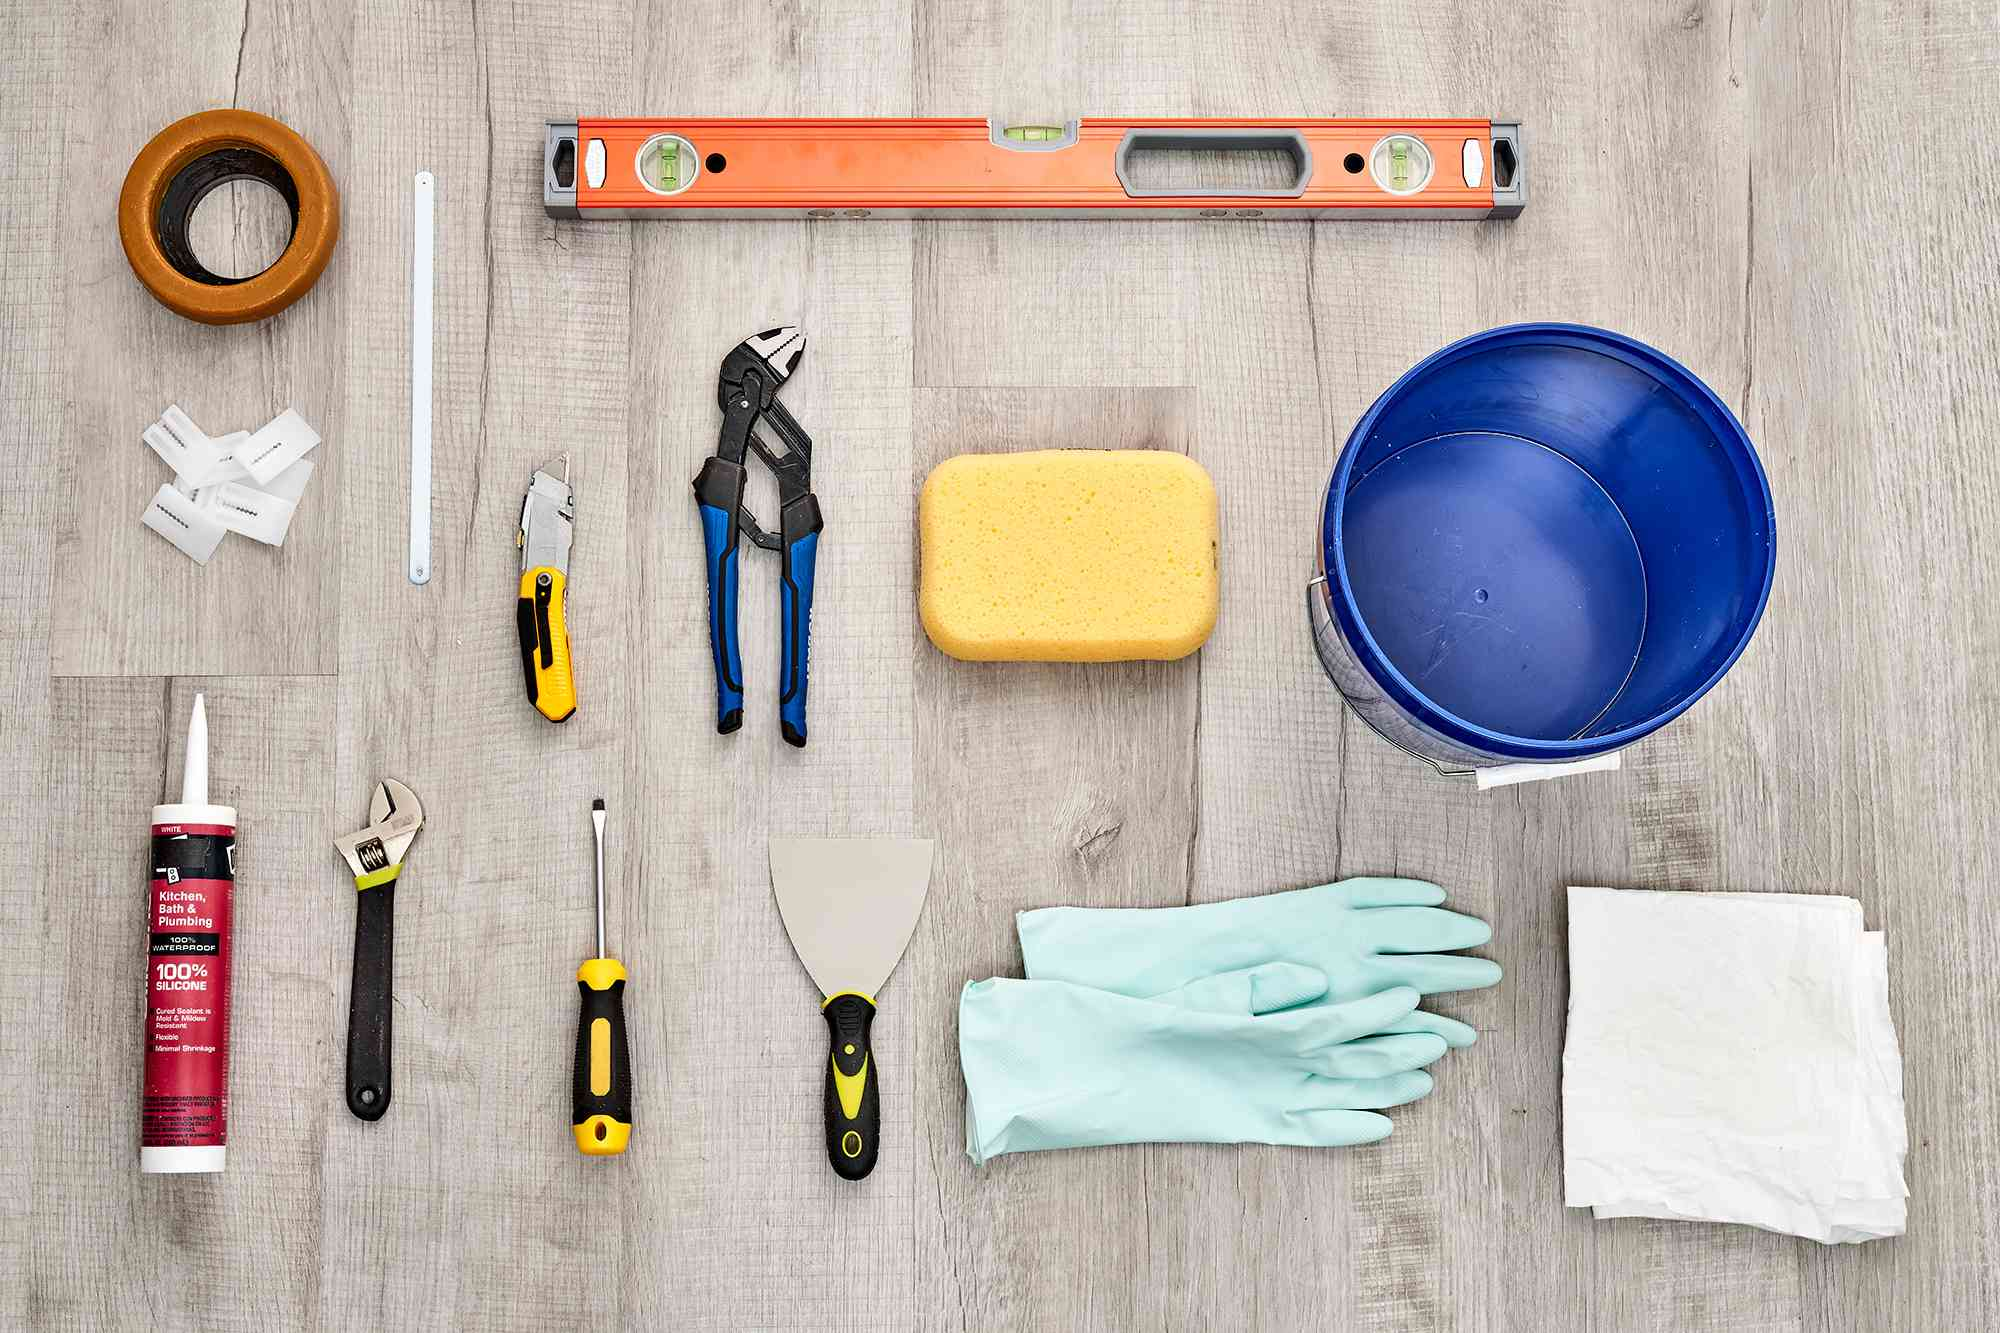 Materials and tools to replace a toilet